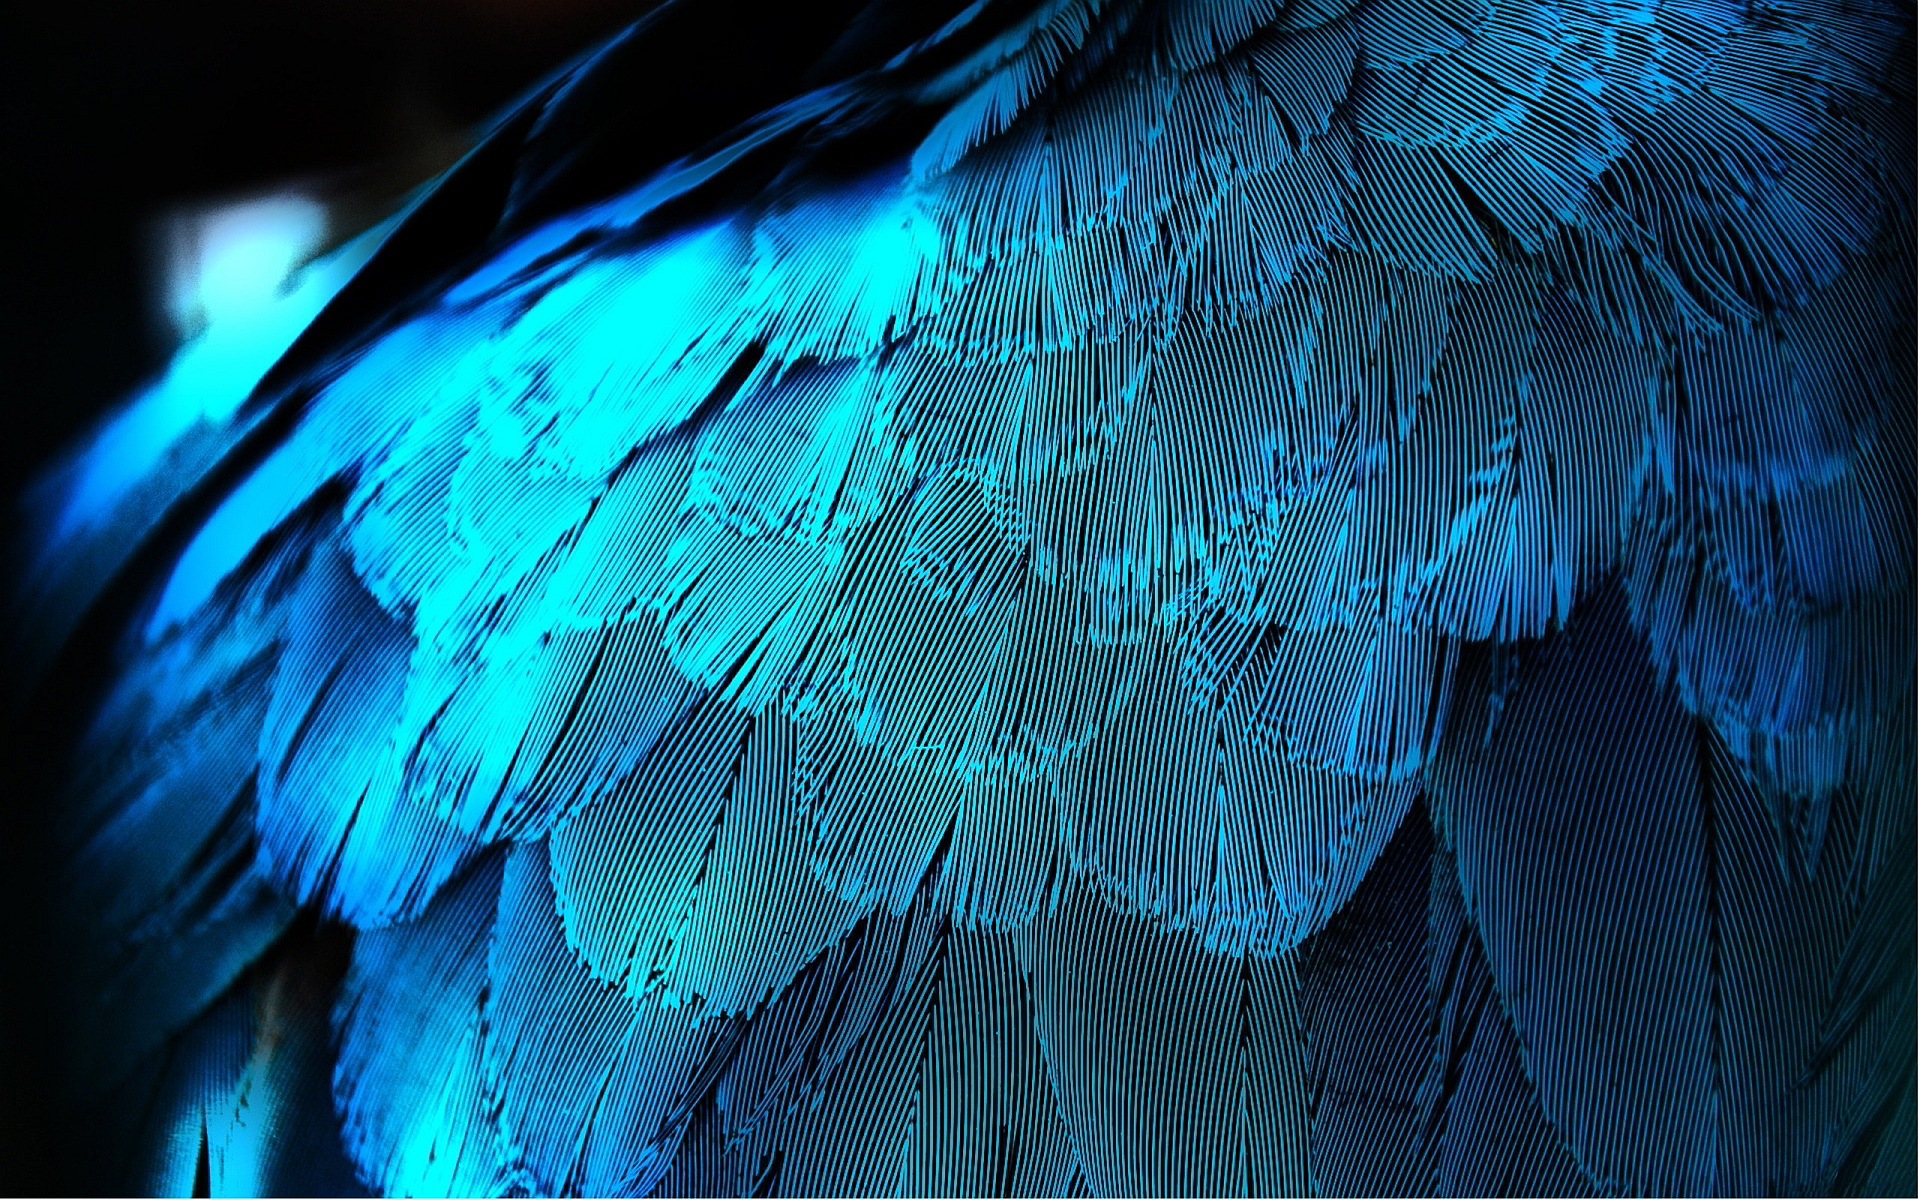 Blue feather wallpaper 1920x1200 11898 1920x1200